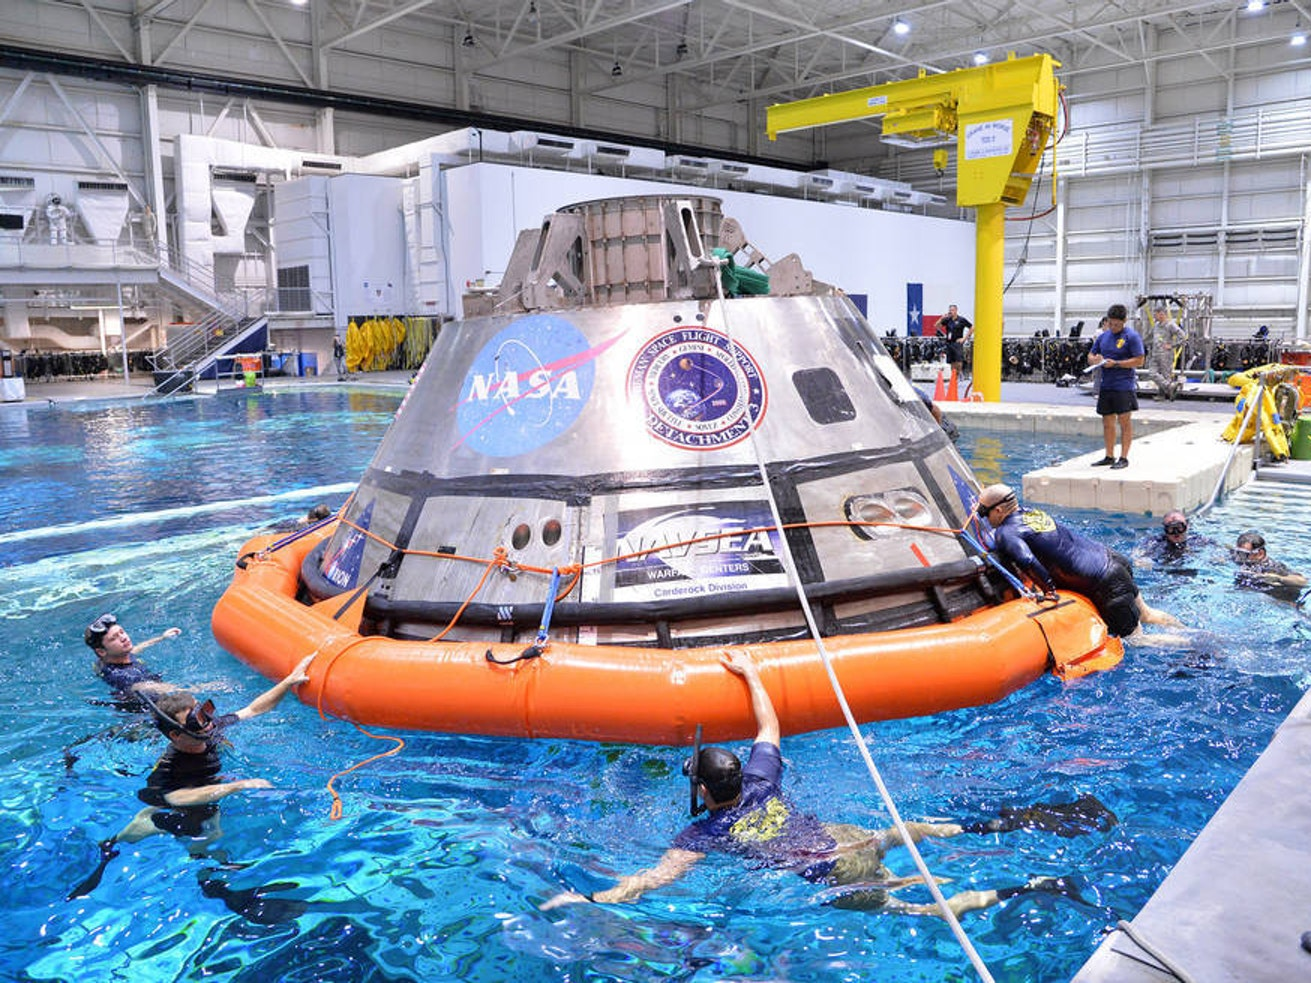 Divers training at the Johnson Space Center.